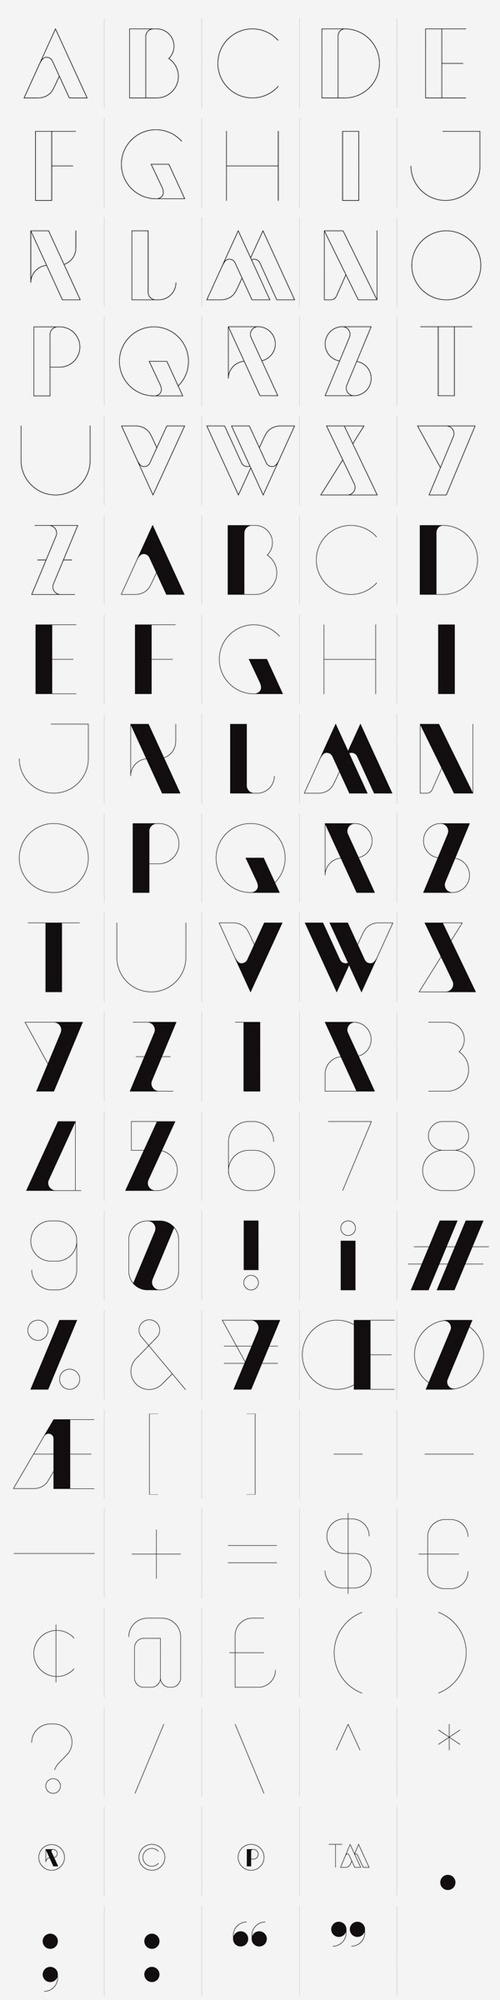 NewModern Typeface Design by Sawdust